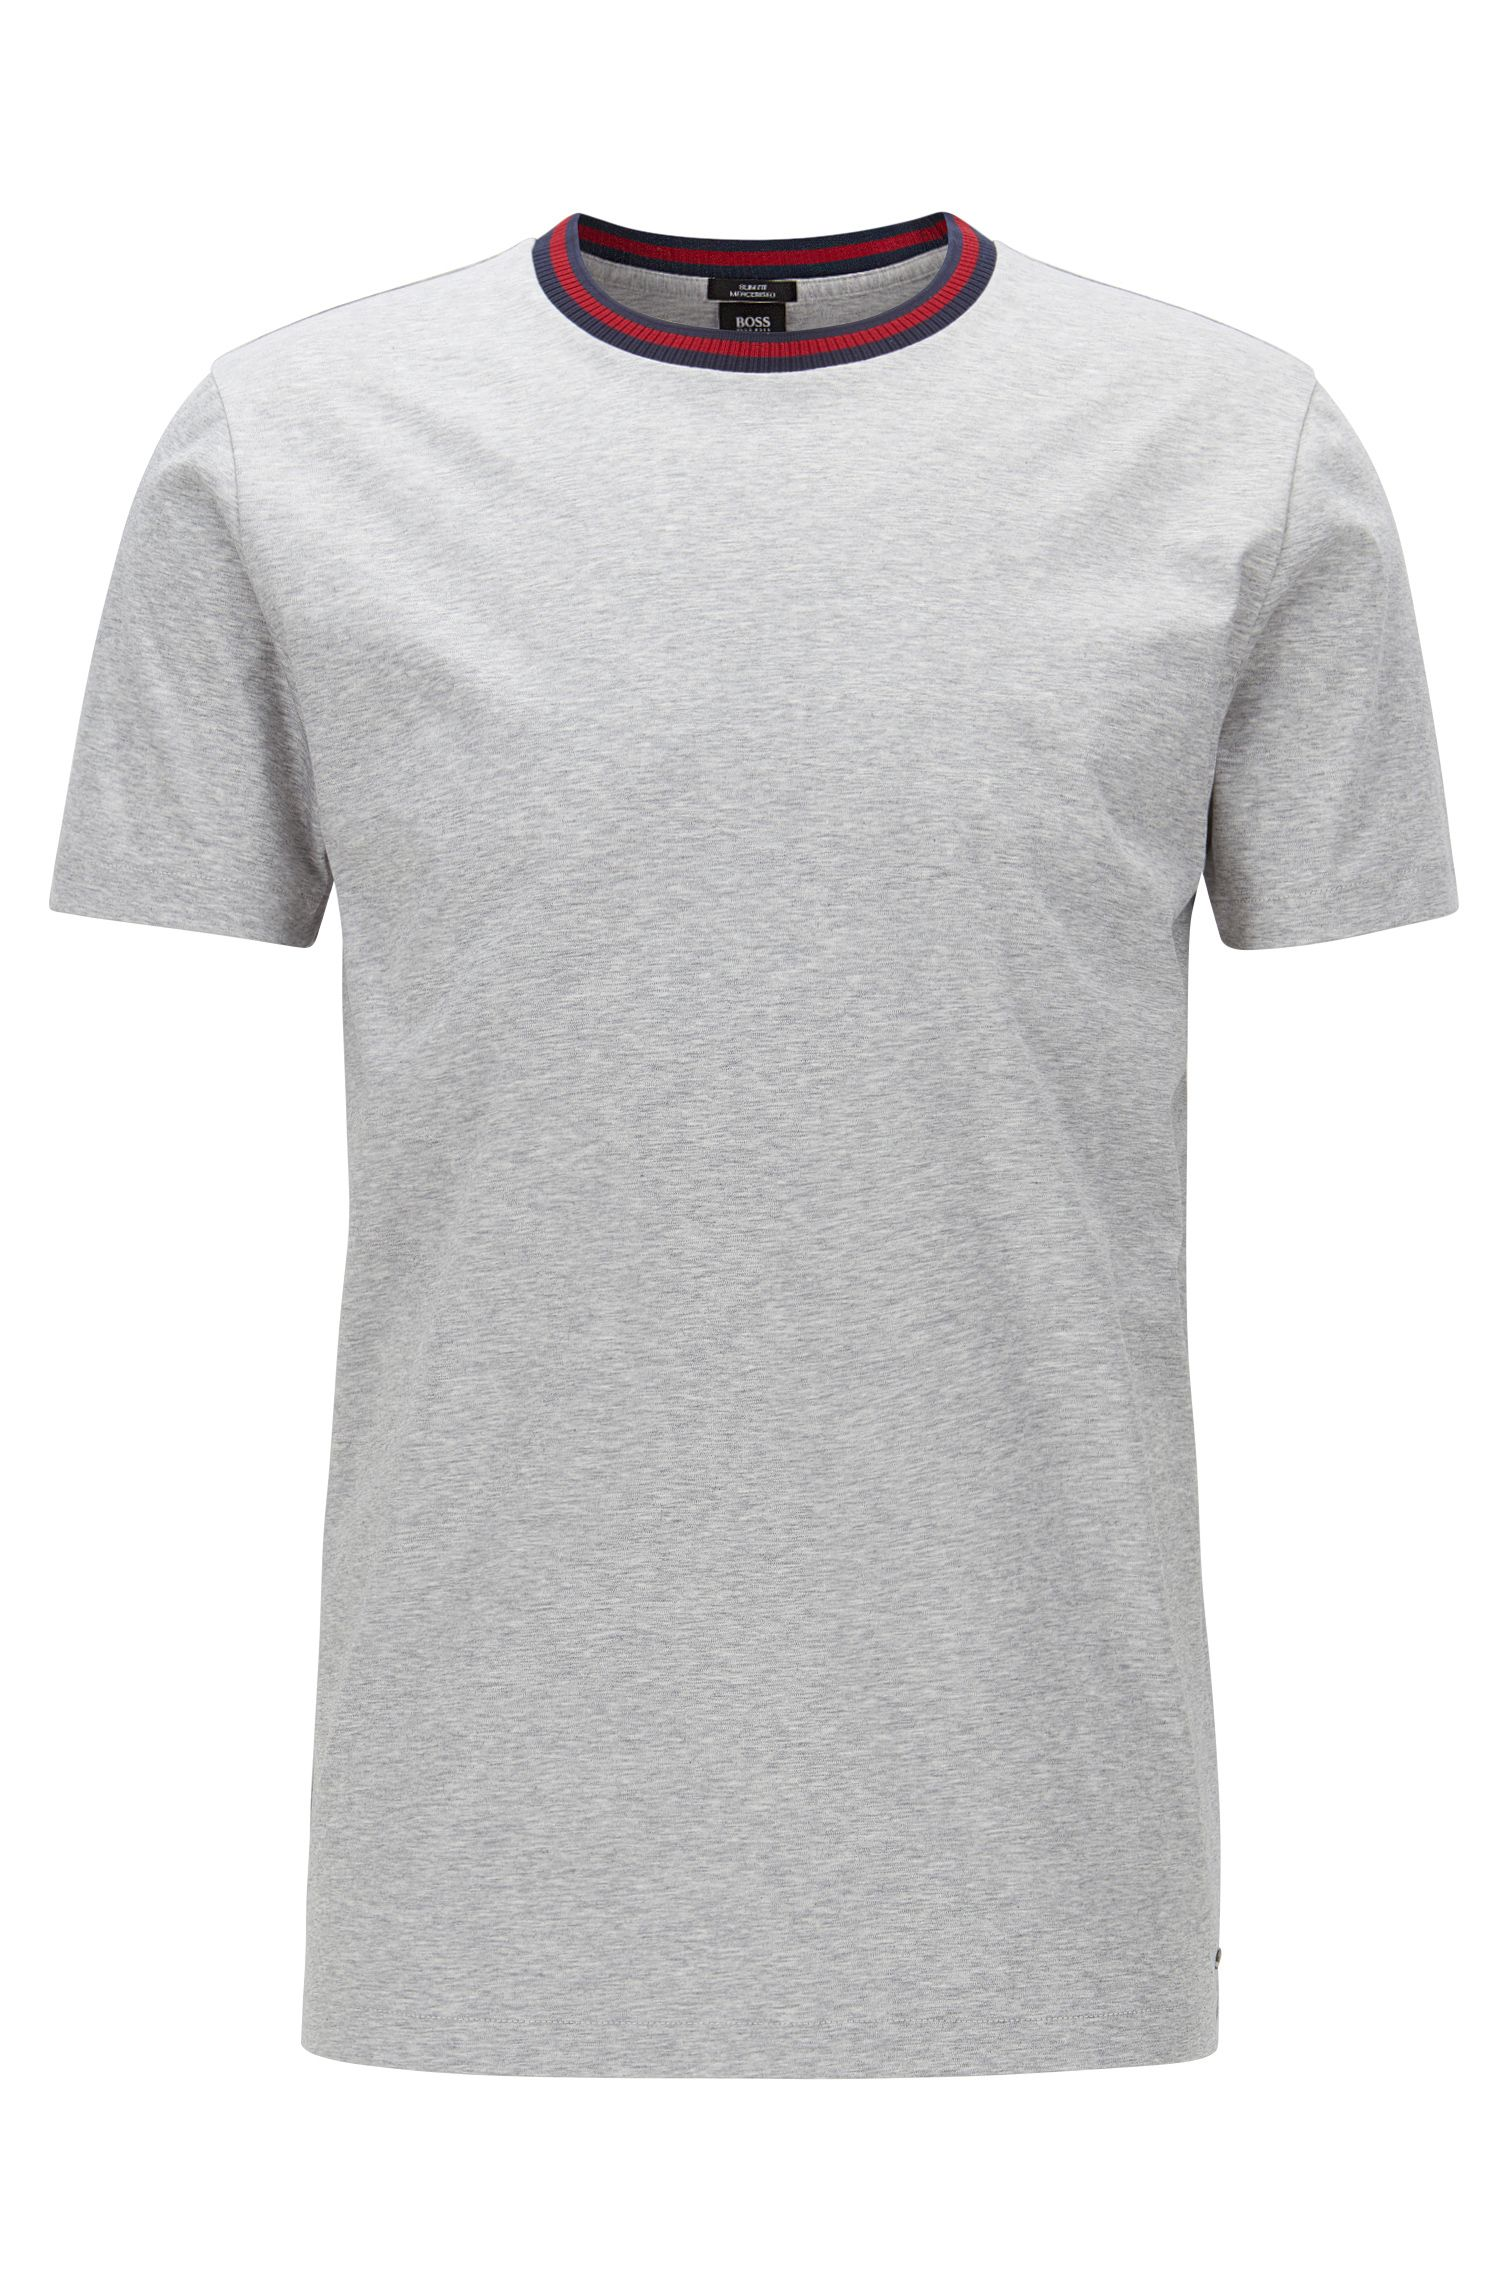 T-shirt slim fit in cotone mercerizzato con collo a contrasto